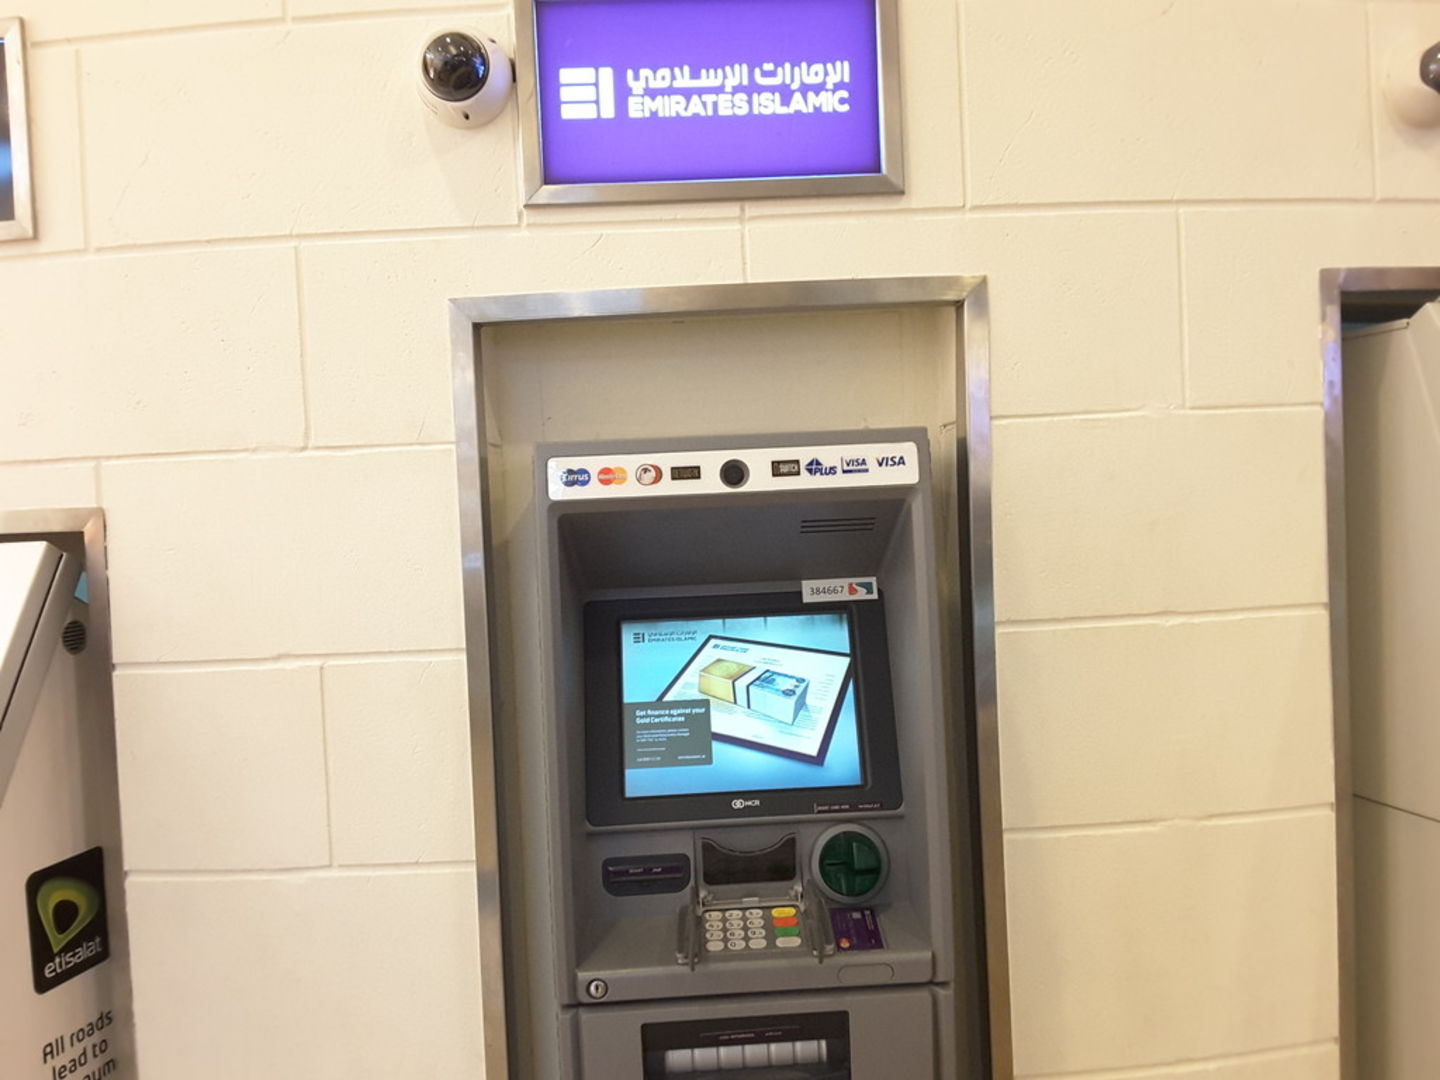 HiDubai-business-emirates-islamic-bank-atm-finance-legal-banks-atms-al-barsha-1-dubai-3